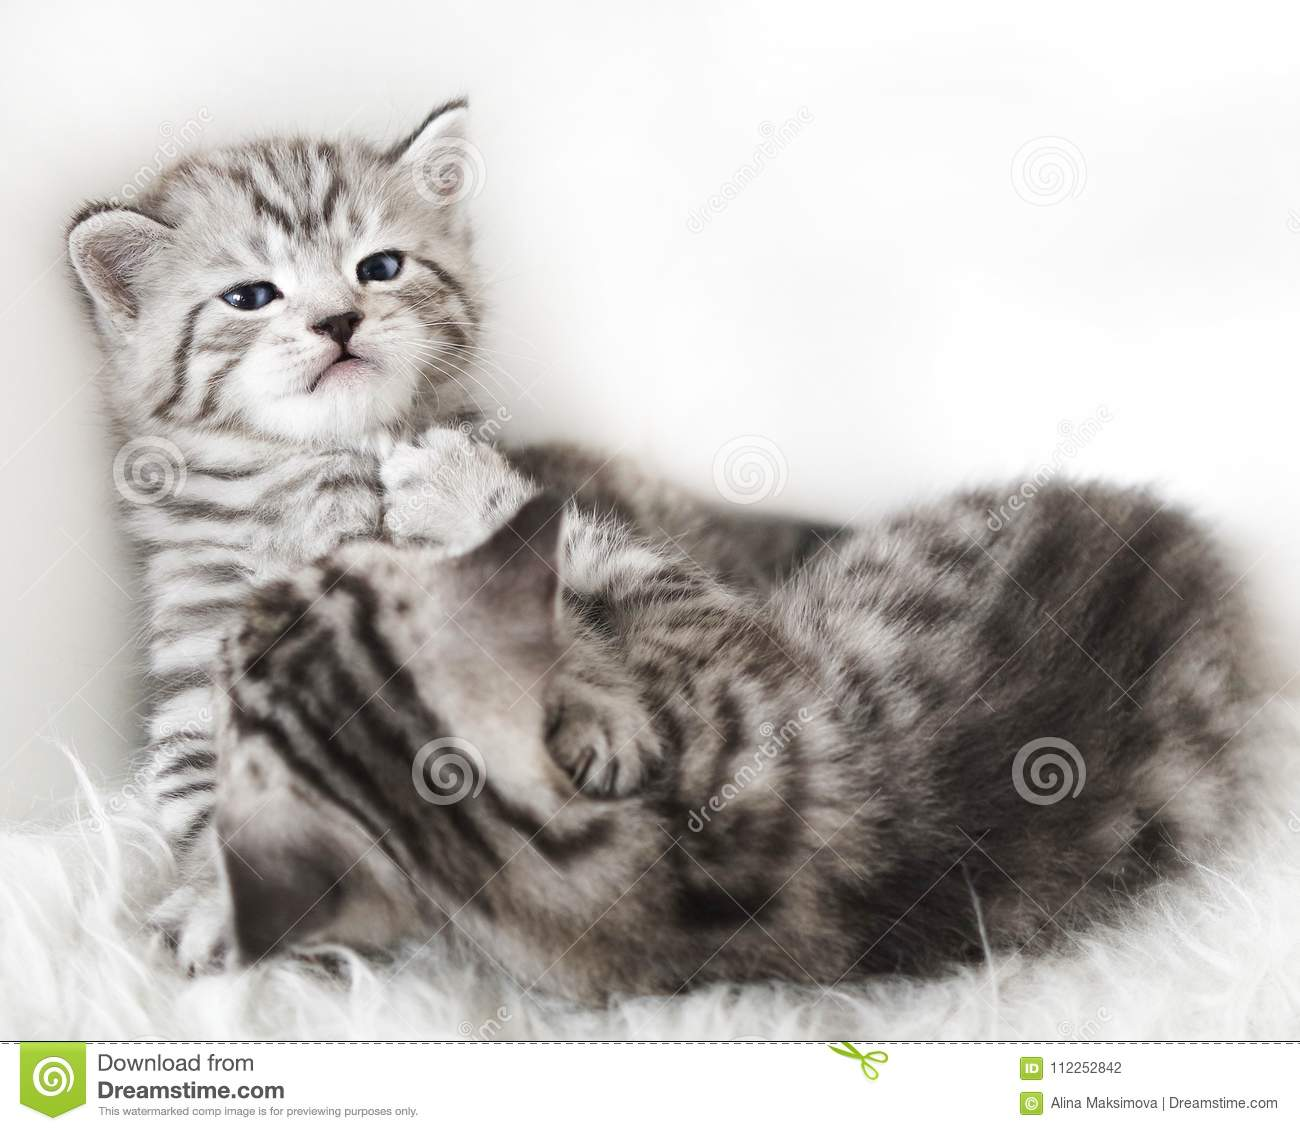 Lovely kittens are playing.